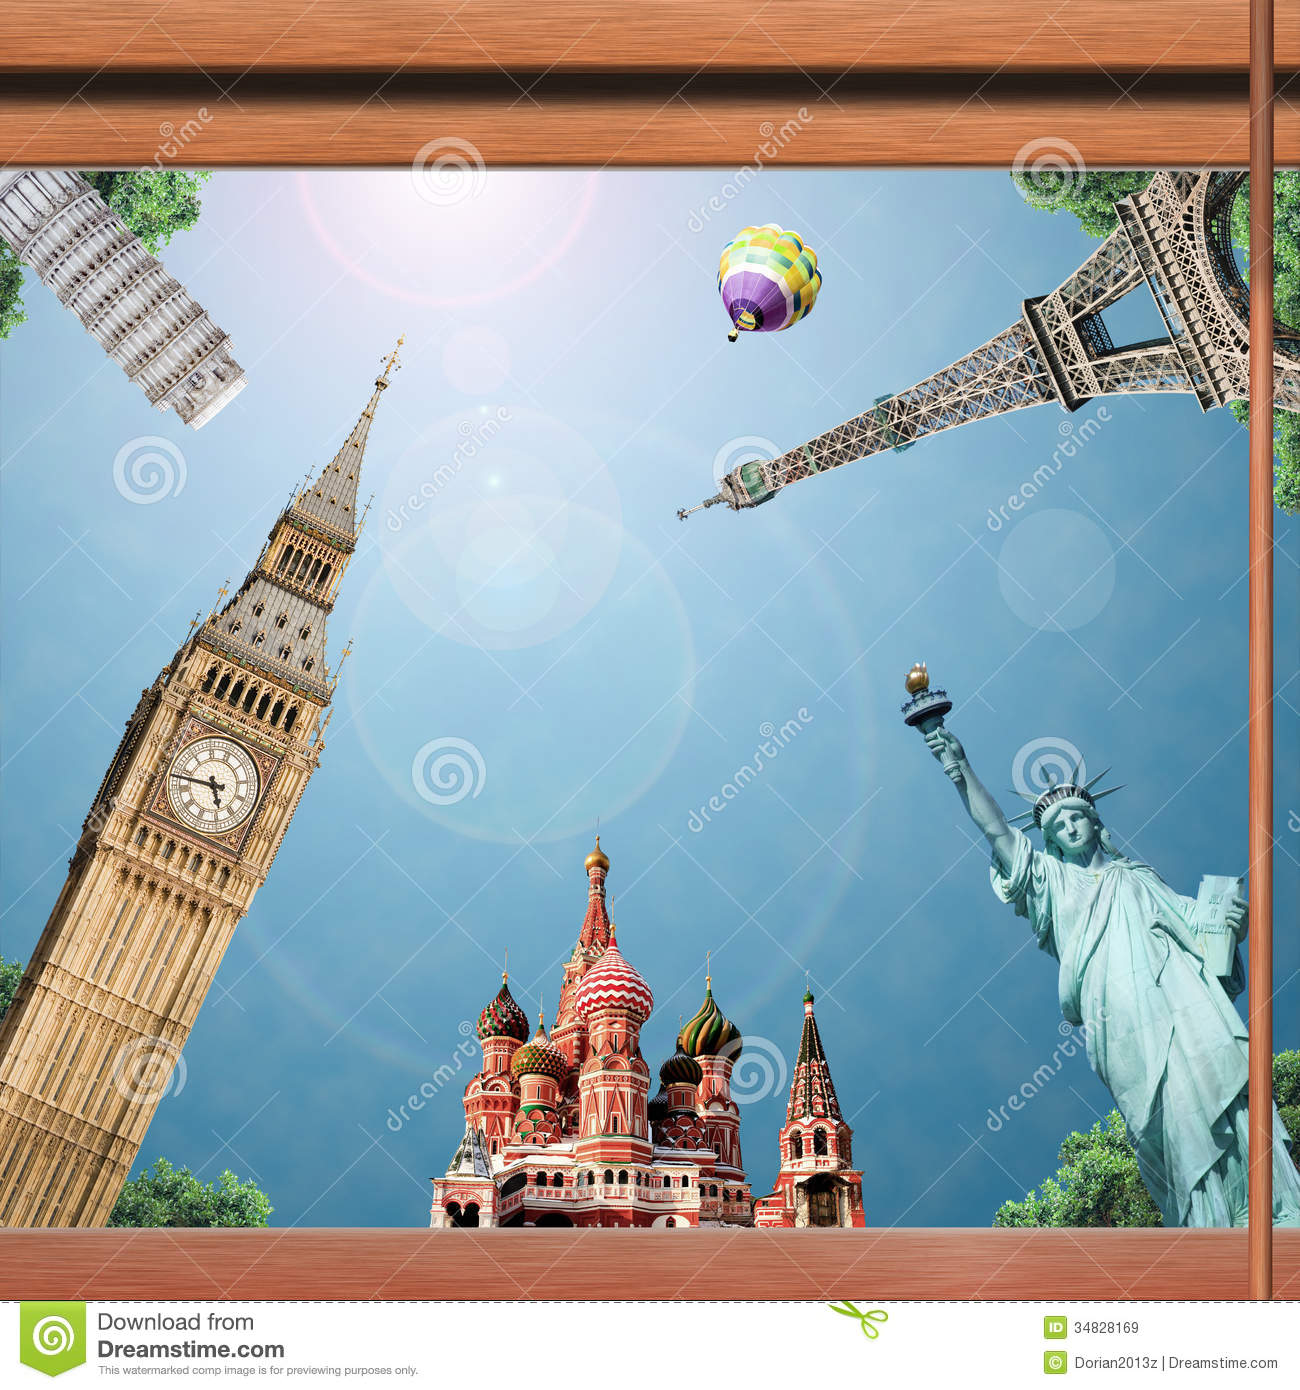 Travel And Trip Stock Image Image Of America, Europe - 34828169-7202